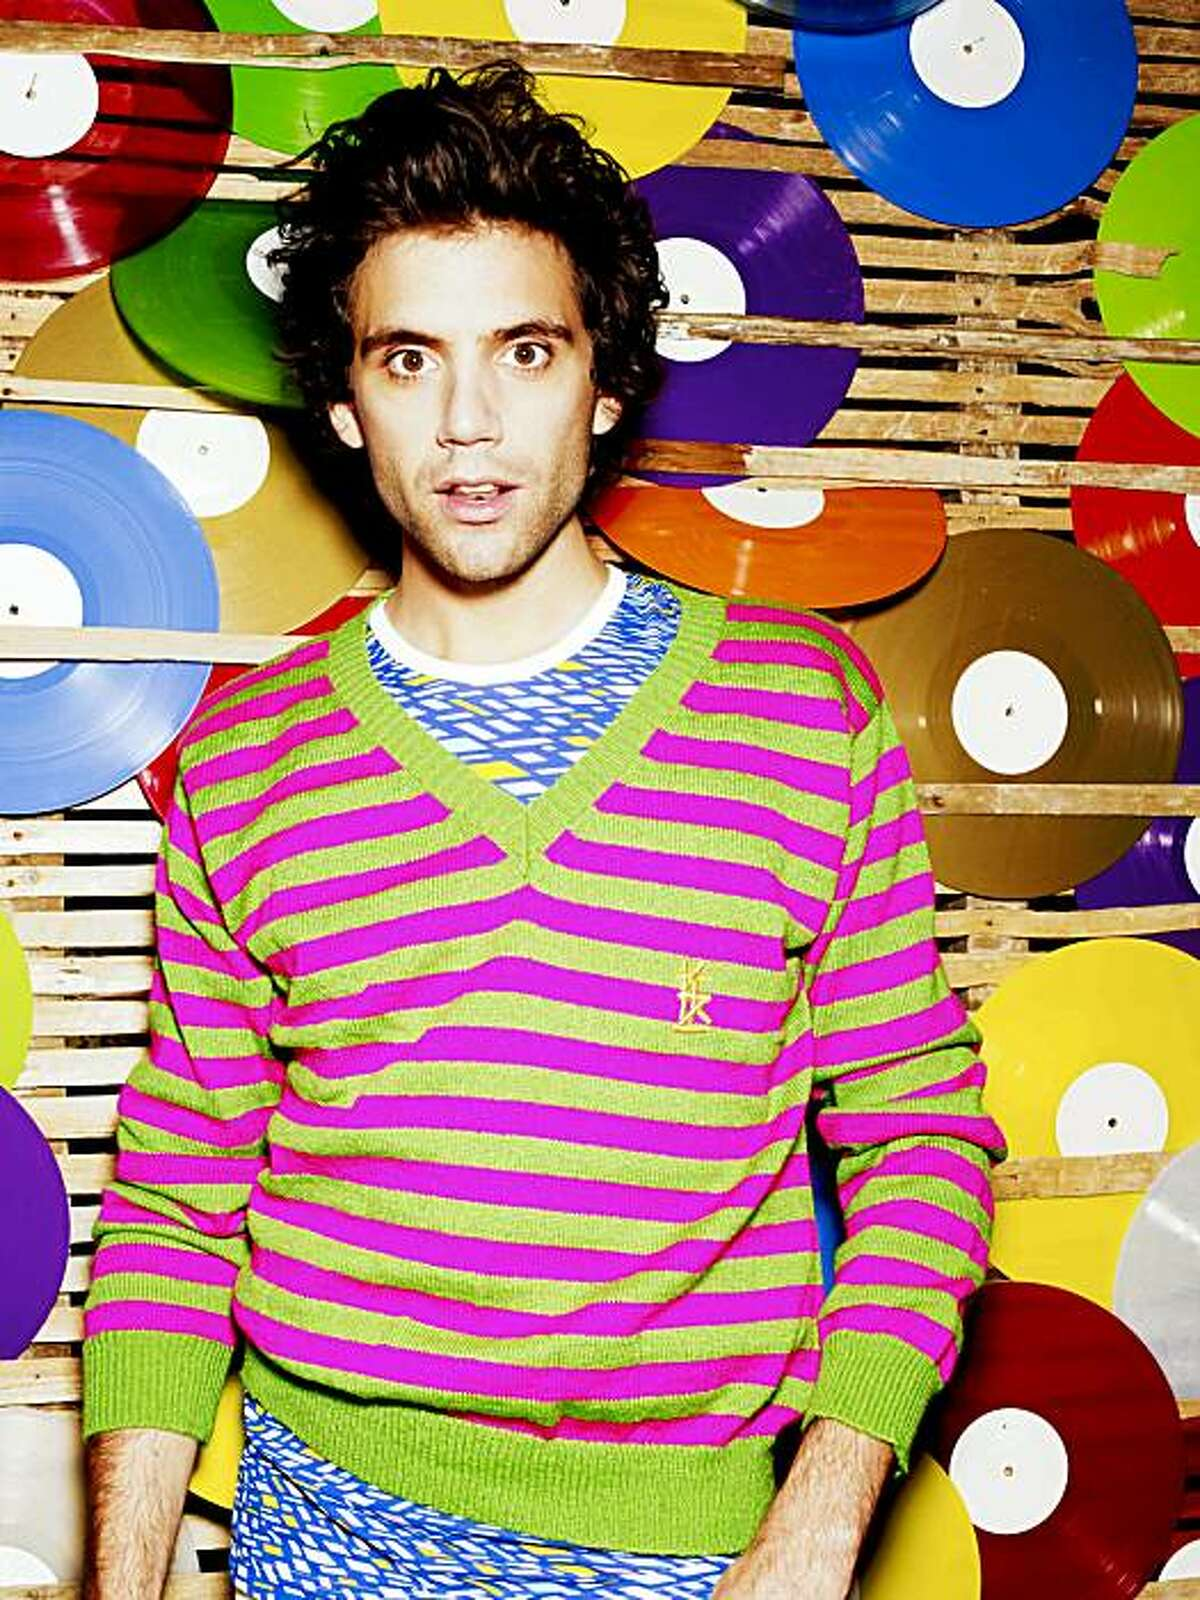 Mika performs Oct. 24 at the Fox Theater in Oakland